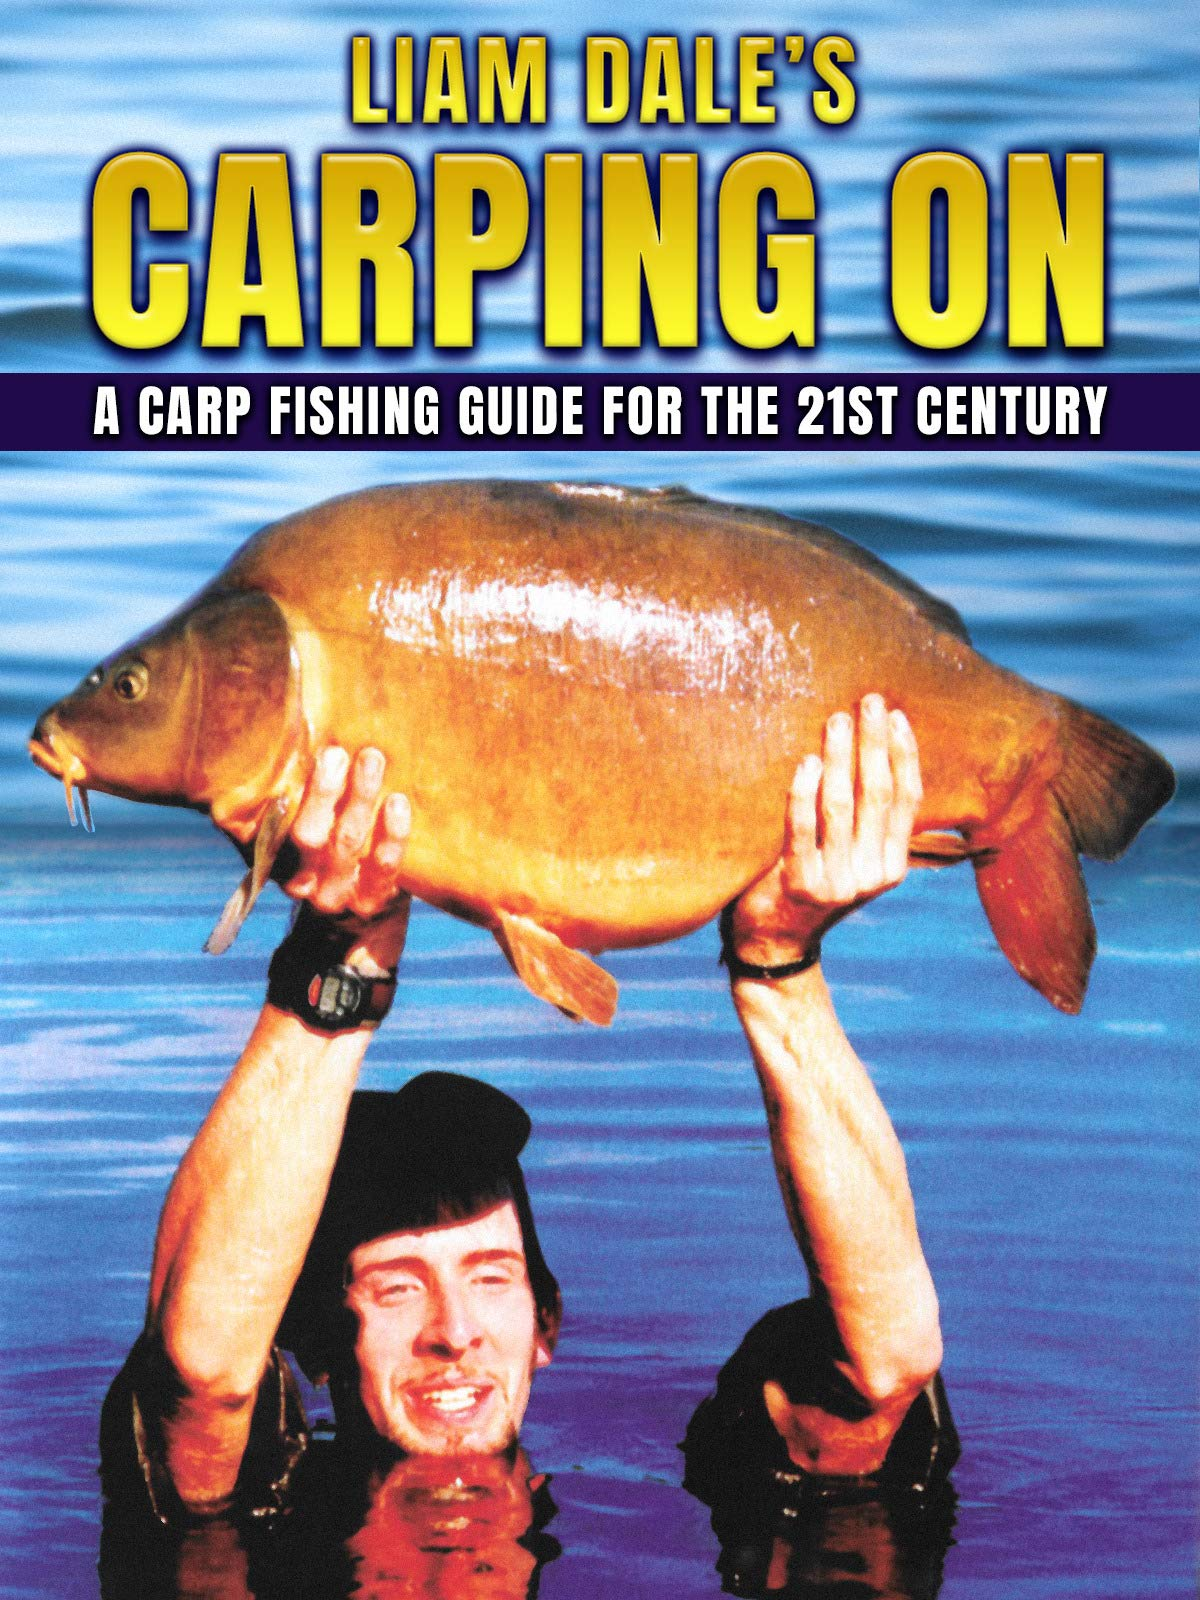 Liam Dale's Carping On: A Carp Fishing Guide for the 21st Century on Amazon Prime Video UK